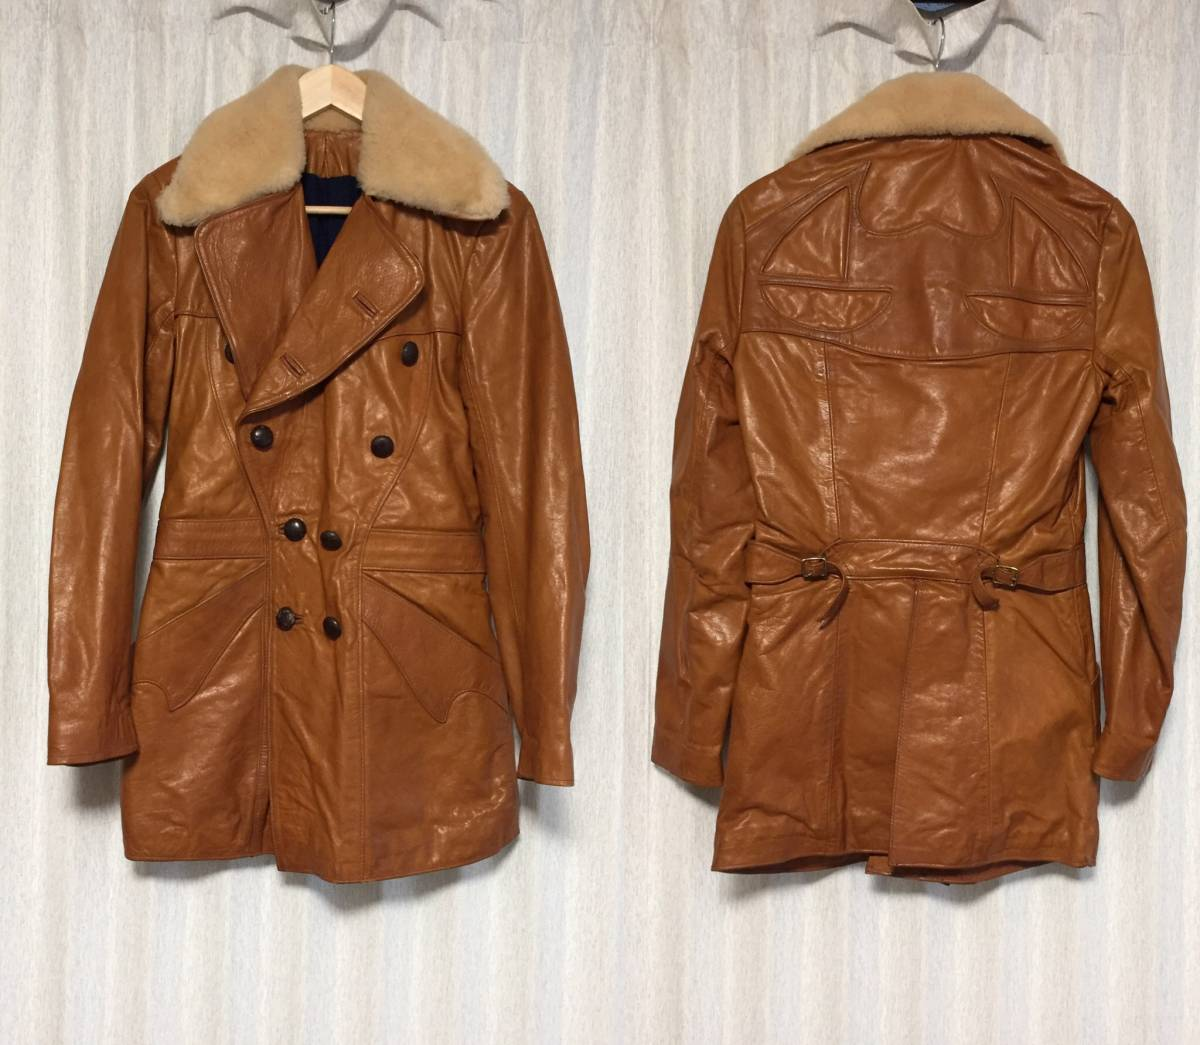 Extremely rare ☆ [East West Musical Instruments] 70s Pcoat Collared Mouton All Leather Long Pea Coat 36 East West